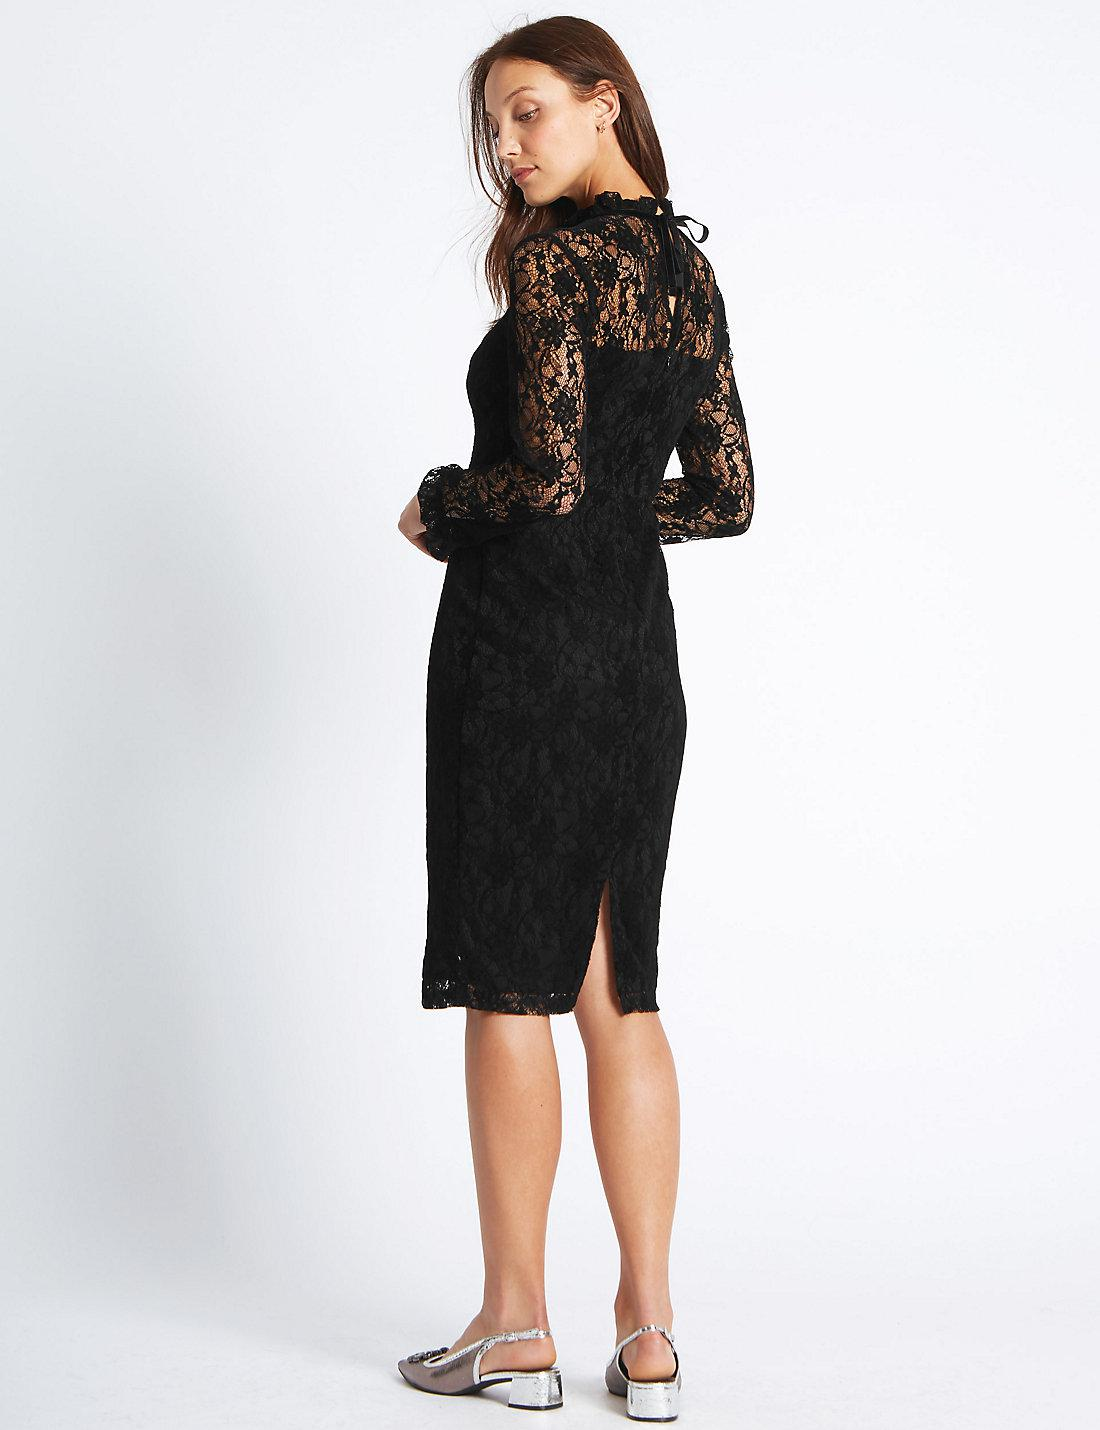 Marks and spencer bodycon dresses and dresses